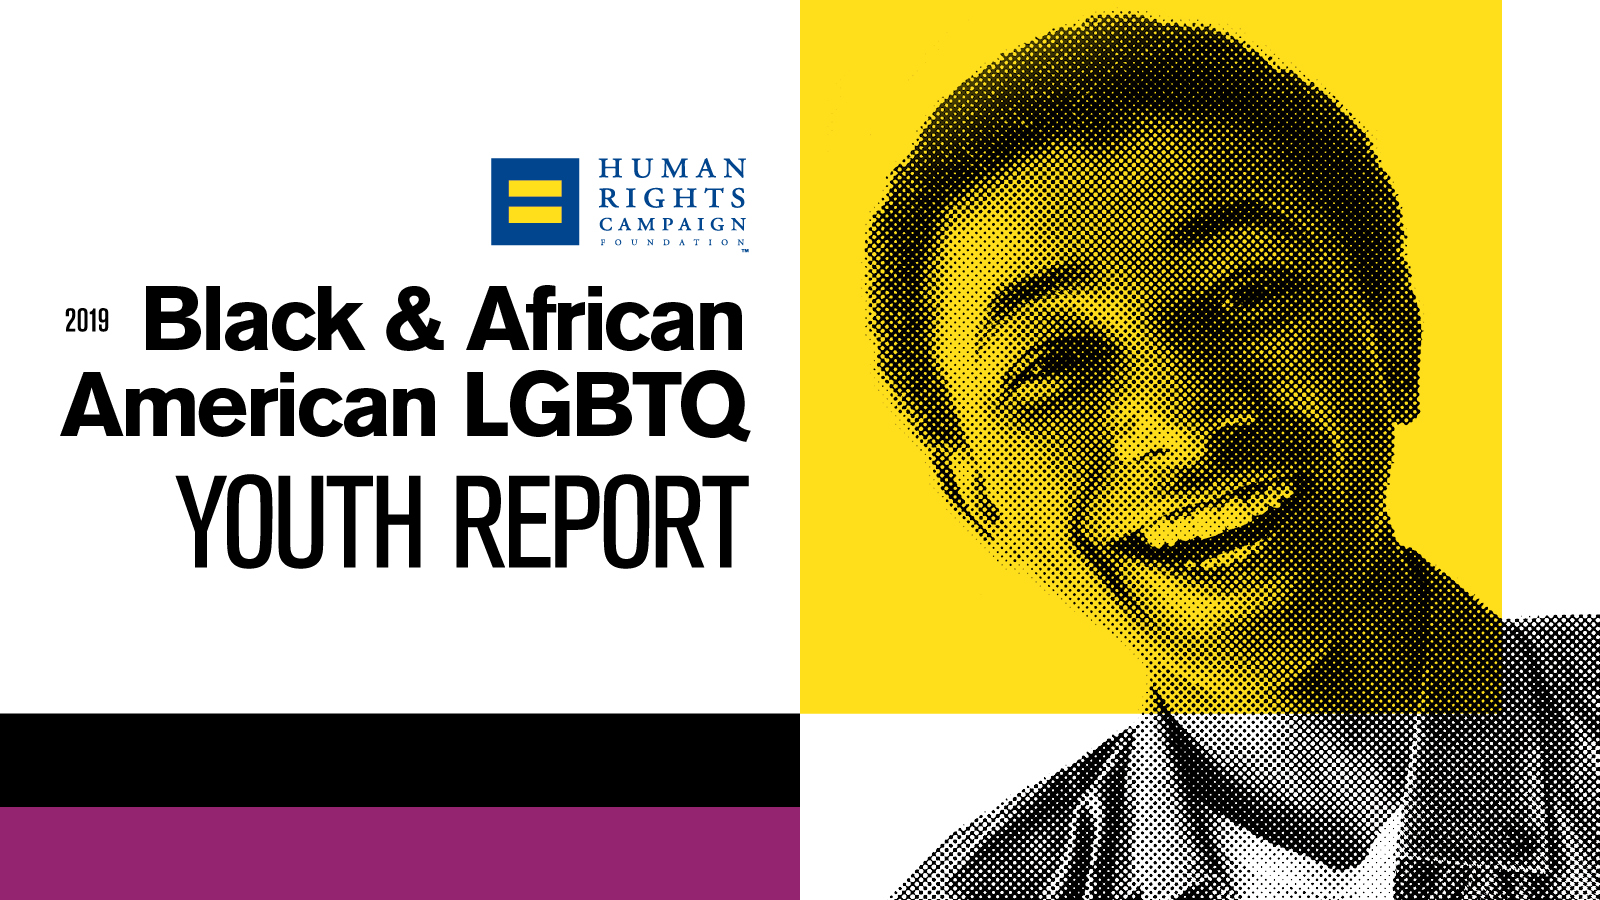 HRC and UCONN Survey Reveals Black LGBTQ Youth Are at Heightened Risk for Discrimination